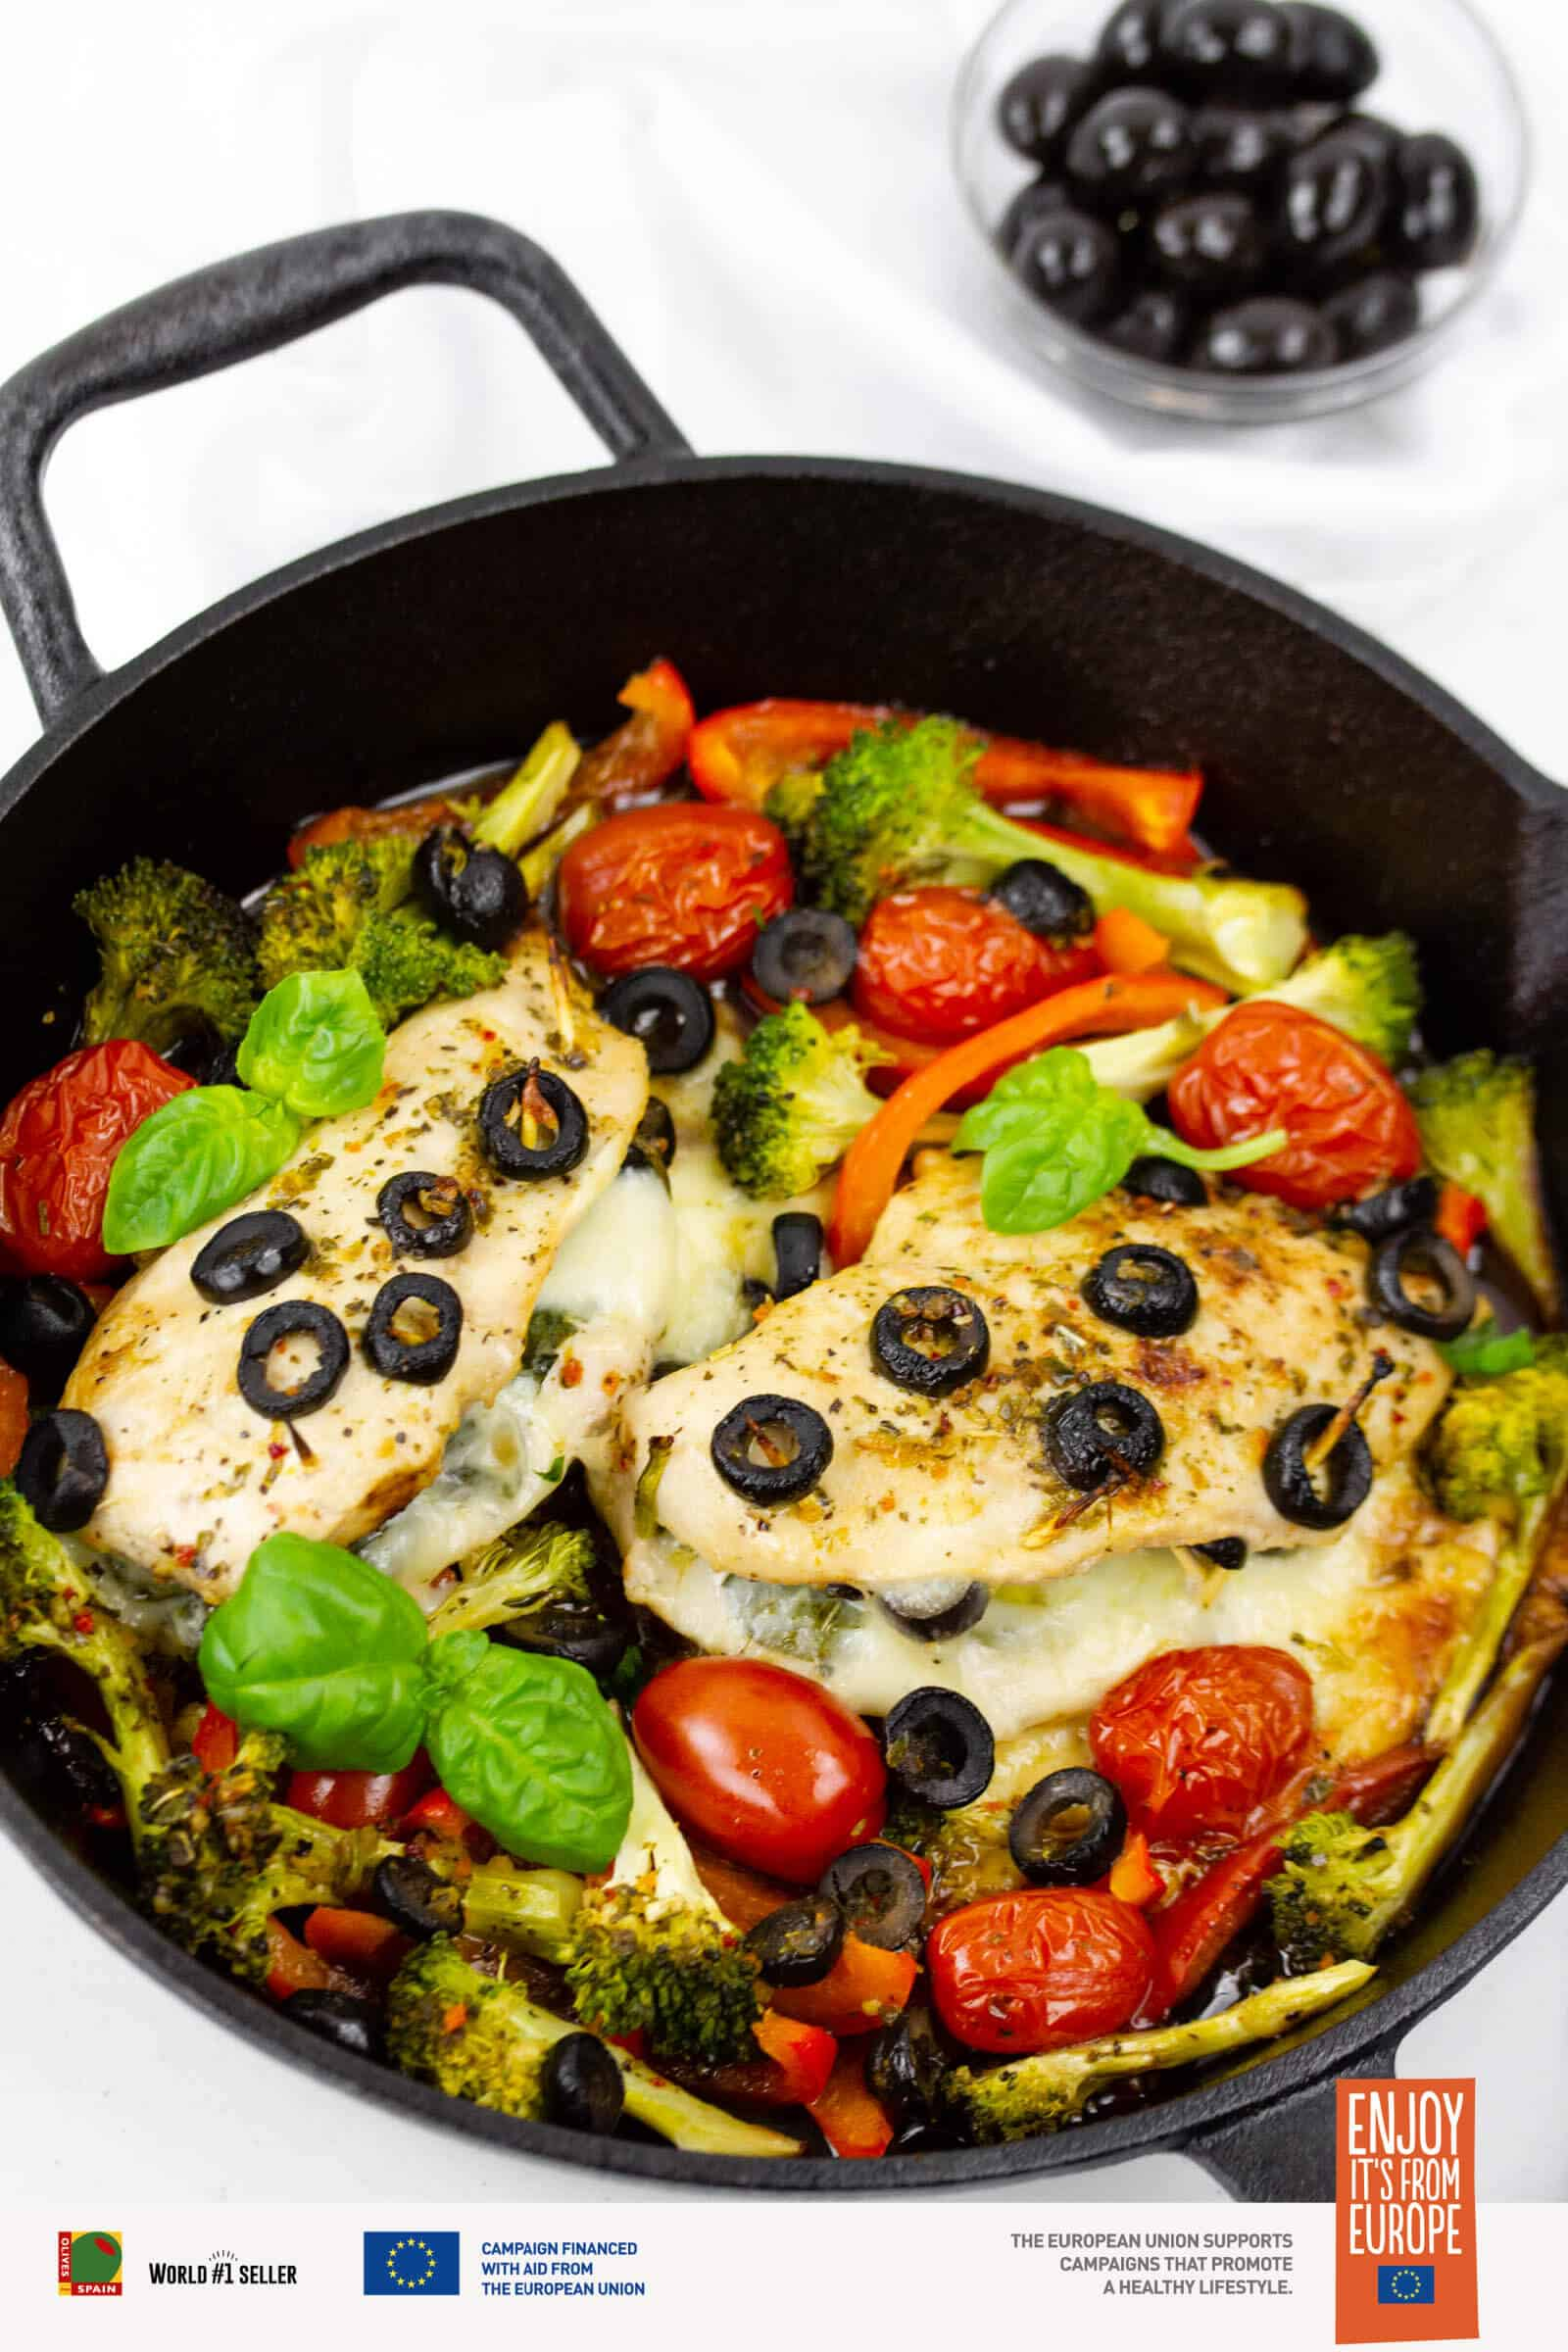 Stuffed chicken breasts with olives, tomatoes, and basil cooked in a cast iron pan.